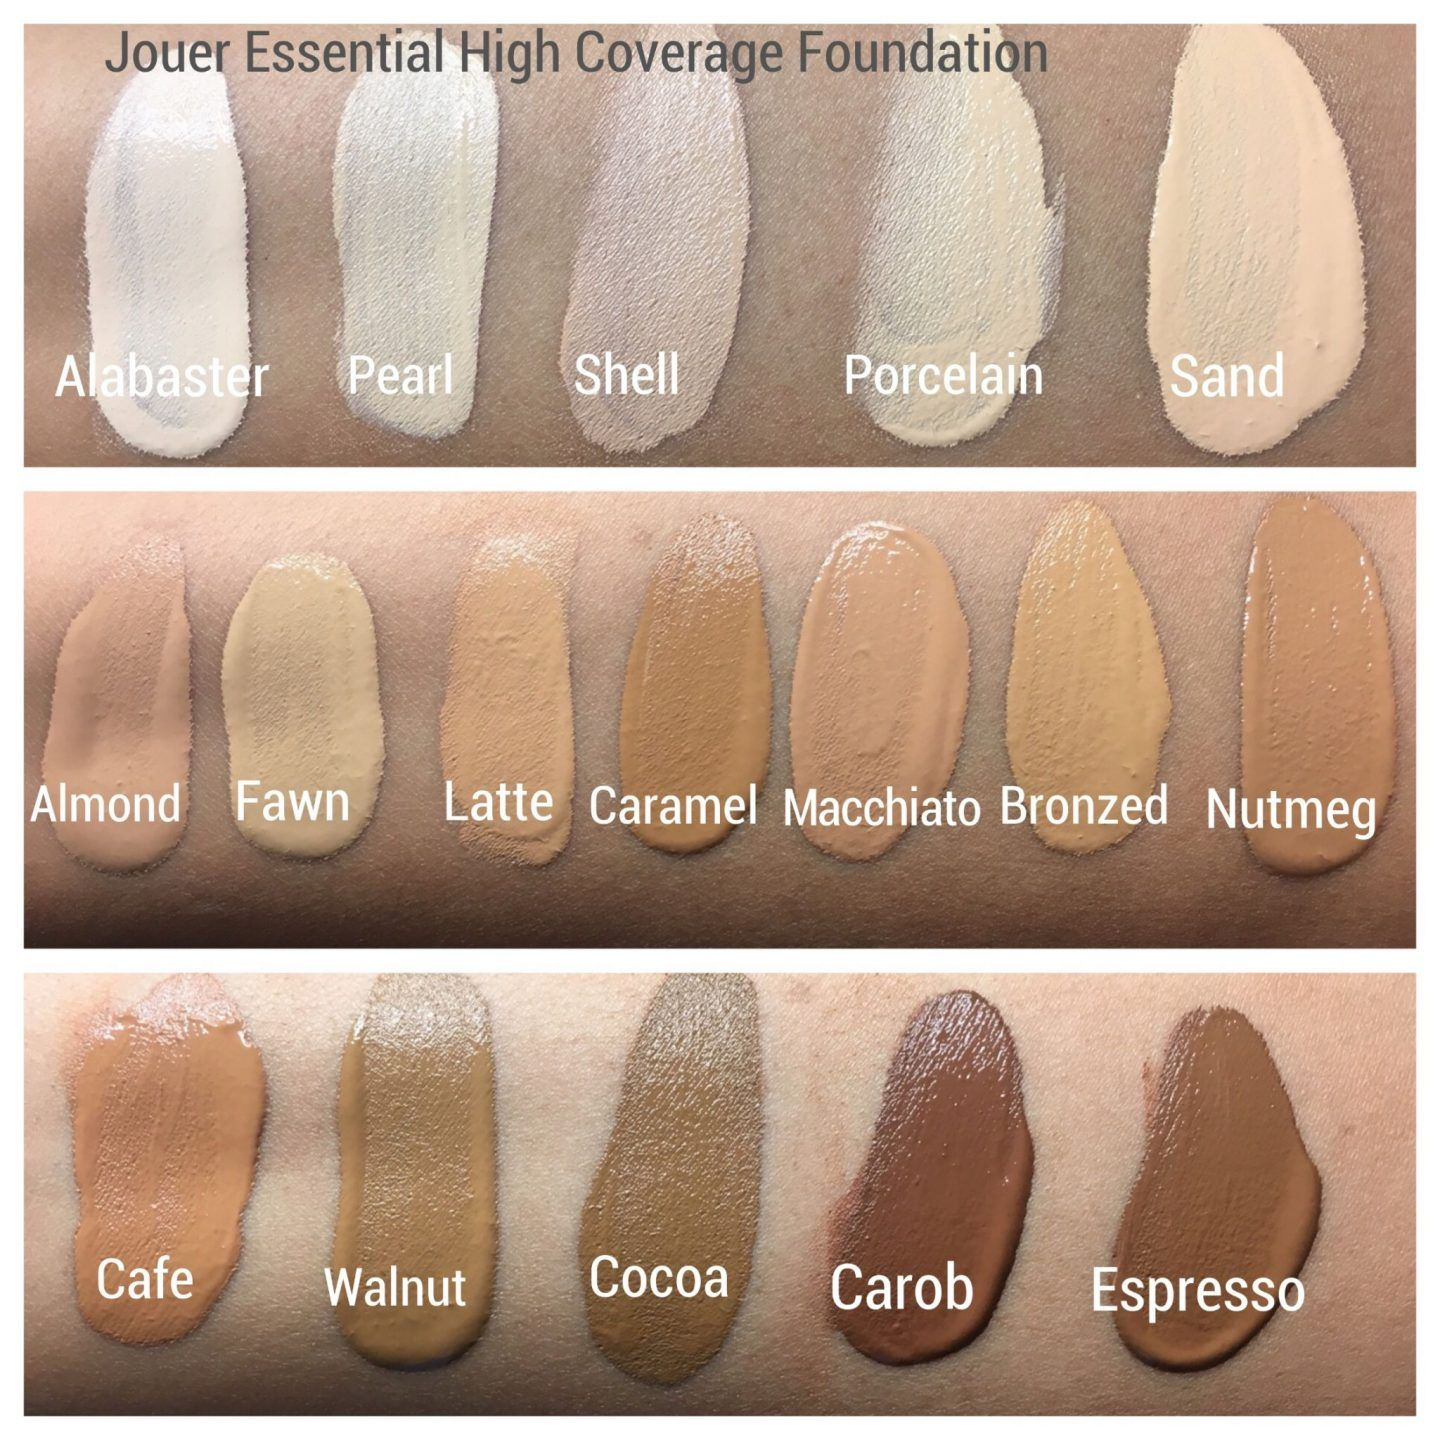 Essential High Coverage Liquid Concealer by jouer #16